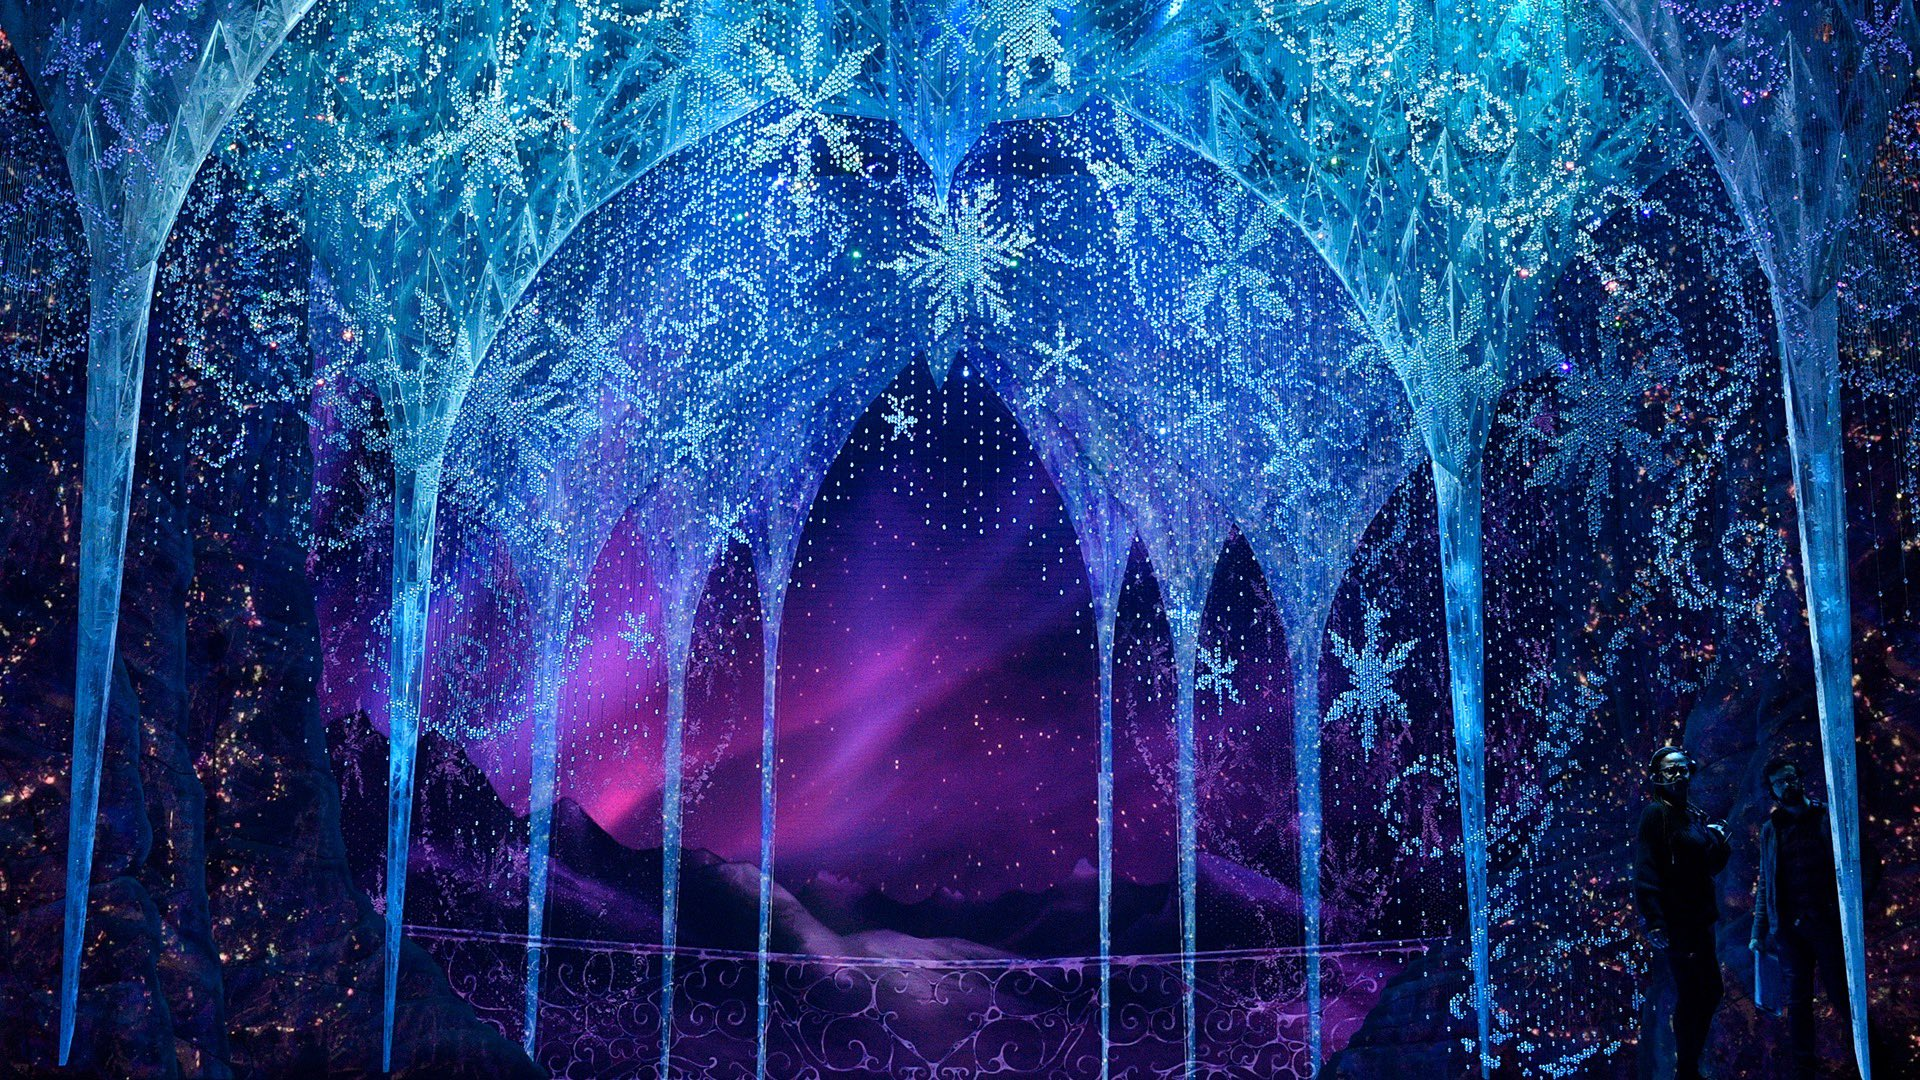 Frozen 2 - Ice landscape from the Frozen Broadway musical